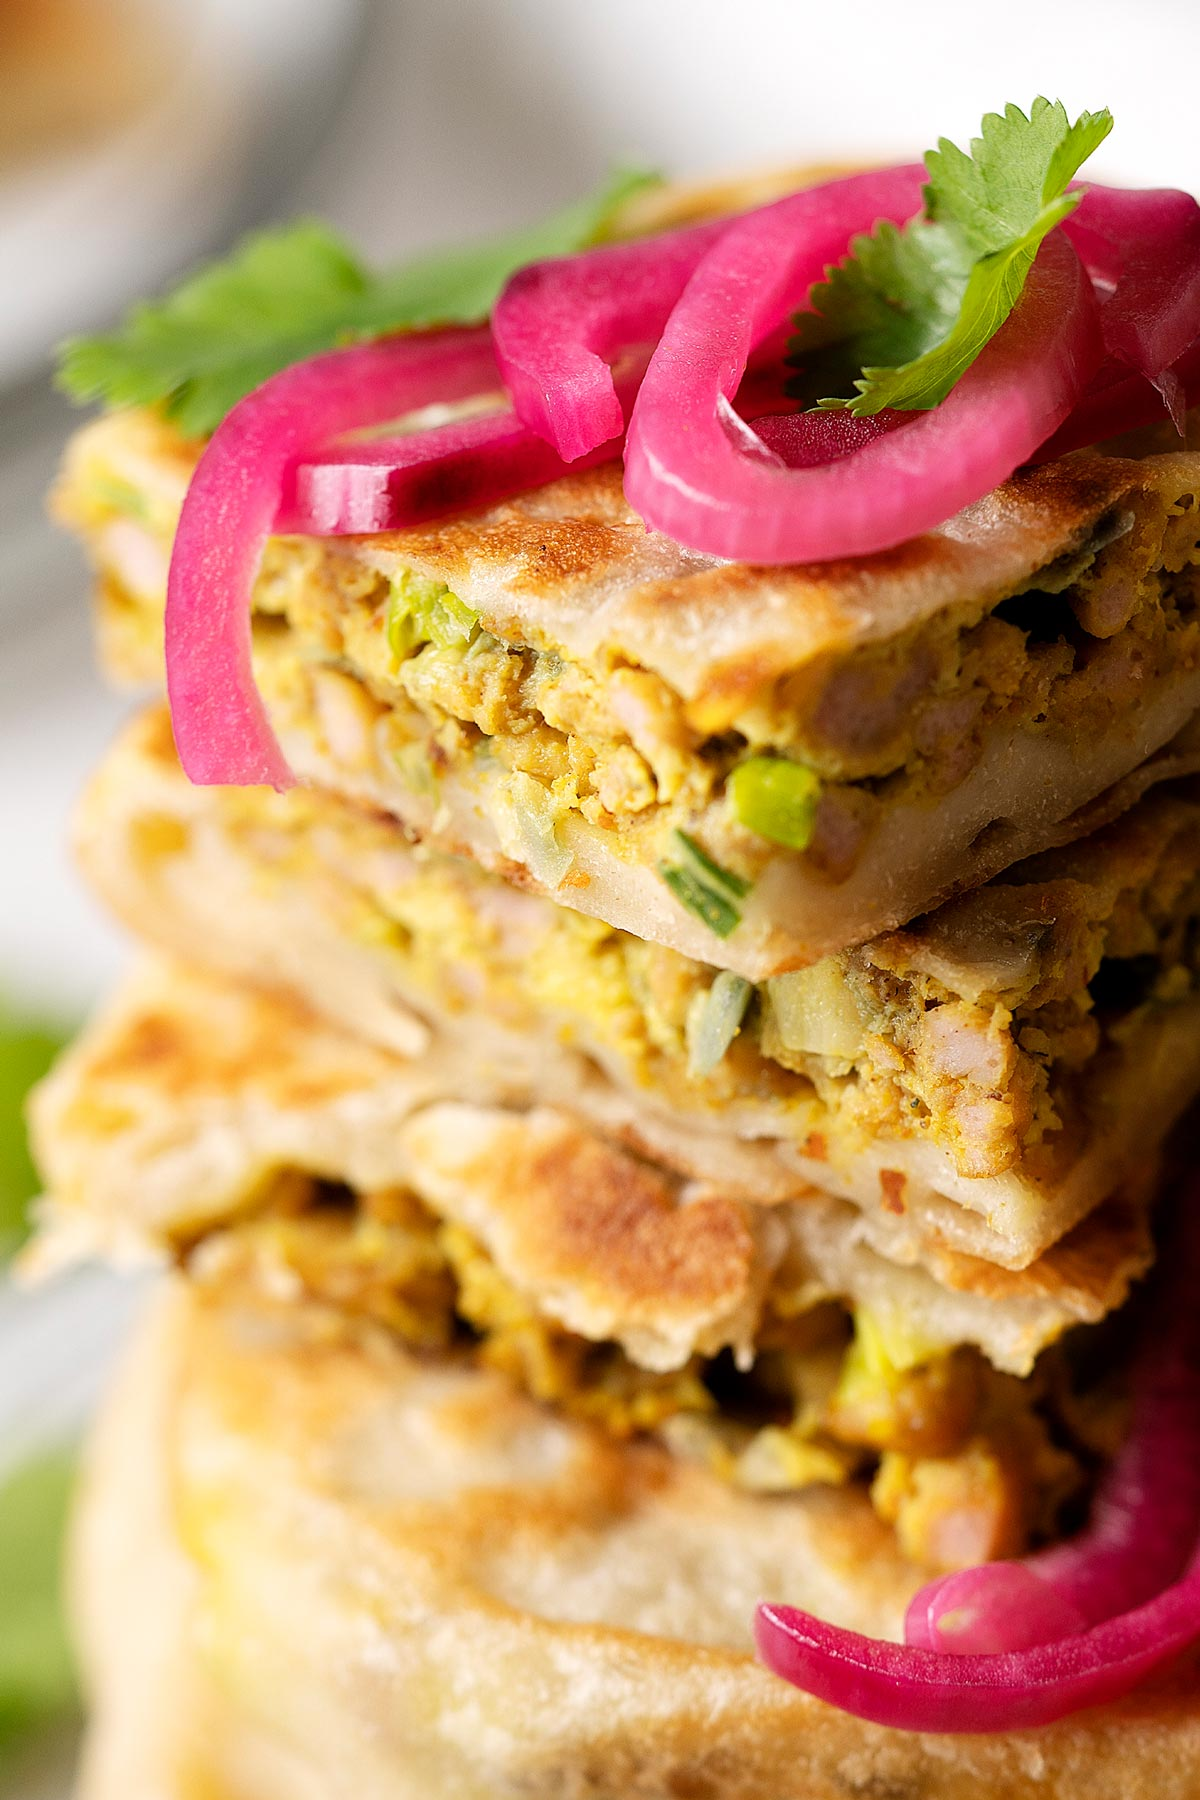 Close up showing the texture of a sliced chicken murtabak flatbread